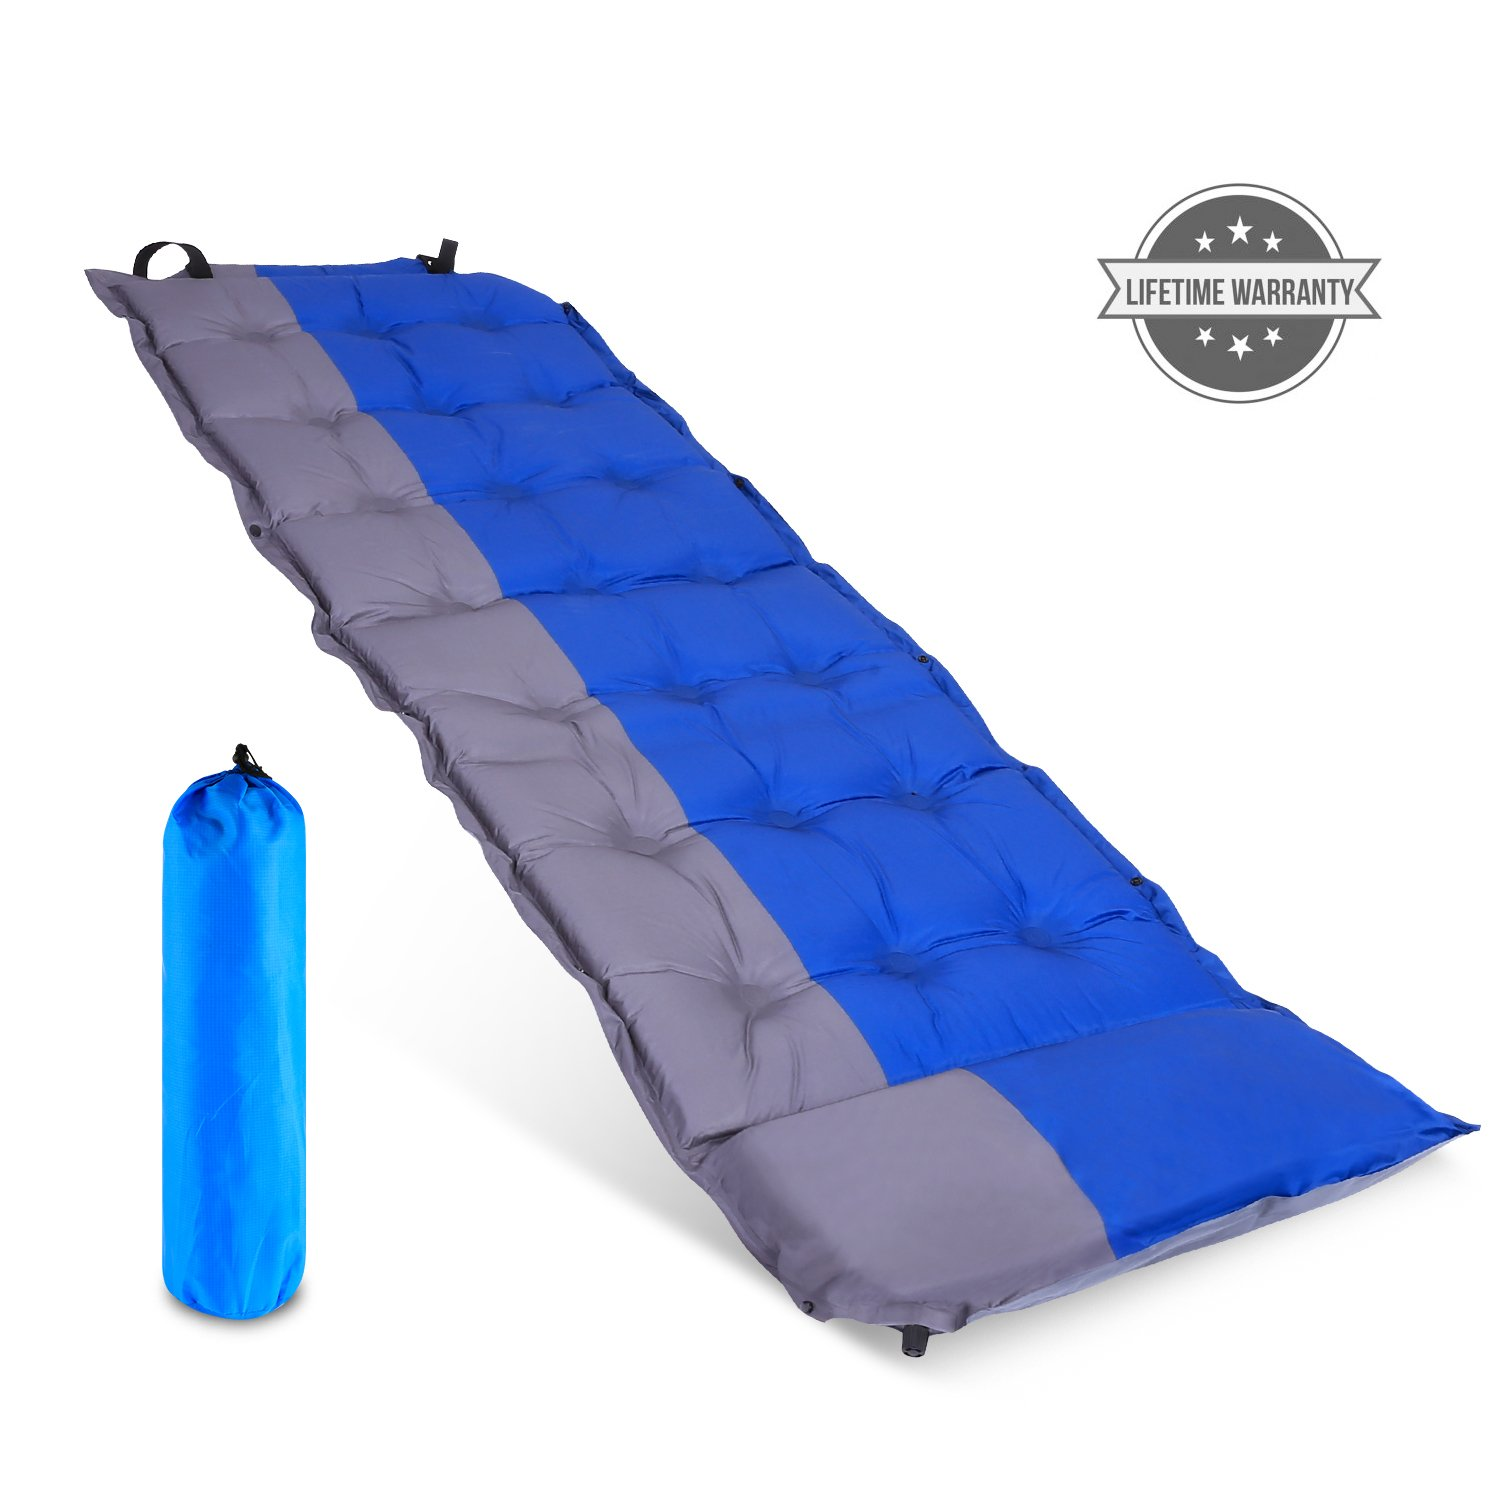 outcamer Sleeping Pad with Attachedの枕バックパッキングキャンプハイキング、プレミアムSelf Inflating Sleeping Pad、軽量インフレータブルFoam Padding Sleeping Mat – 断熱耐久性コンパクト – For Kids B07D3NCWQZ  ブルー